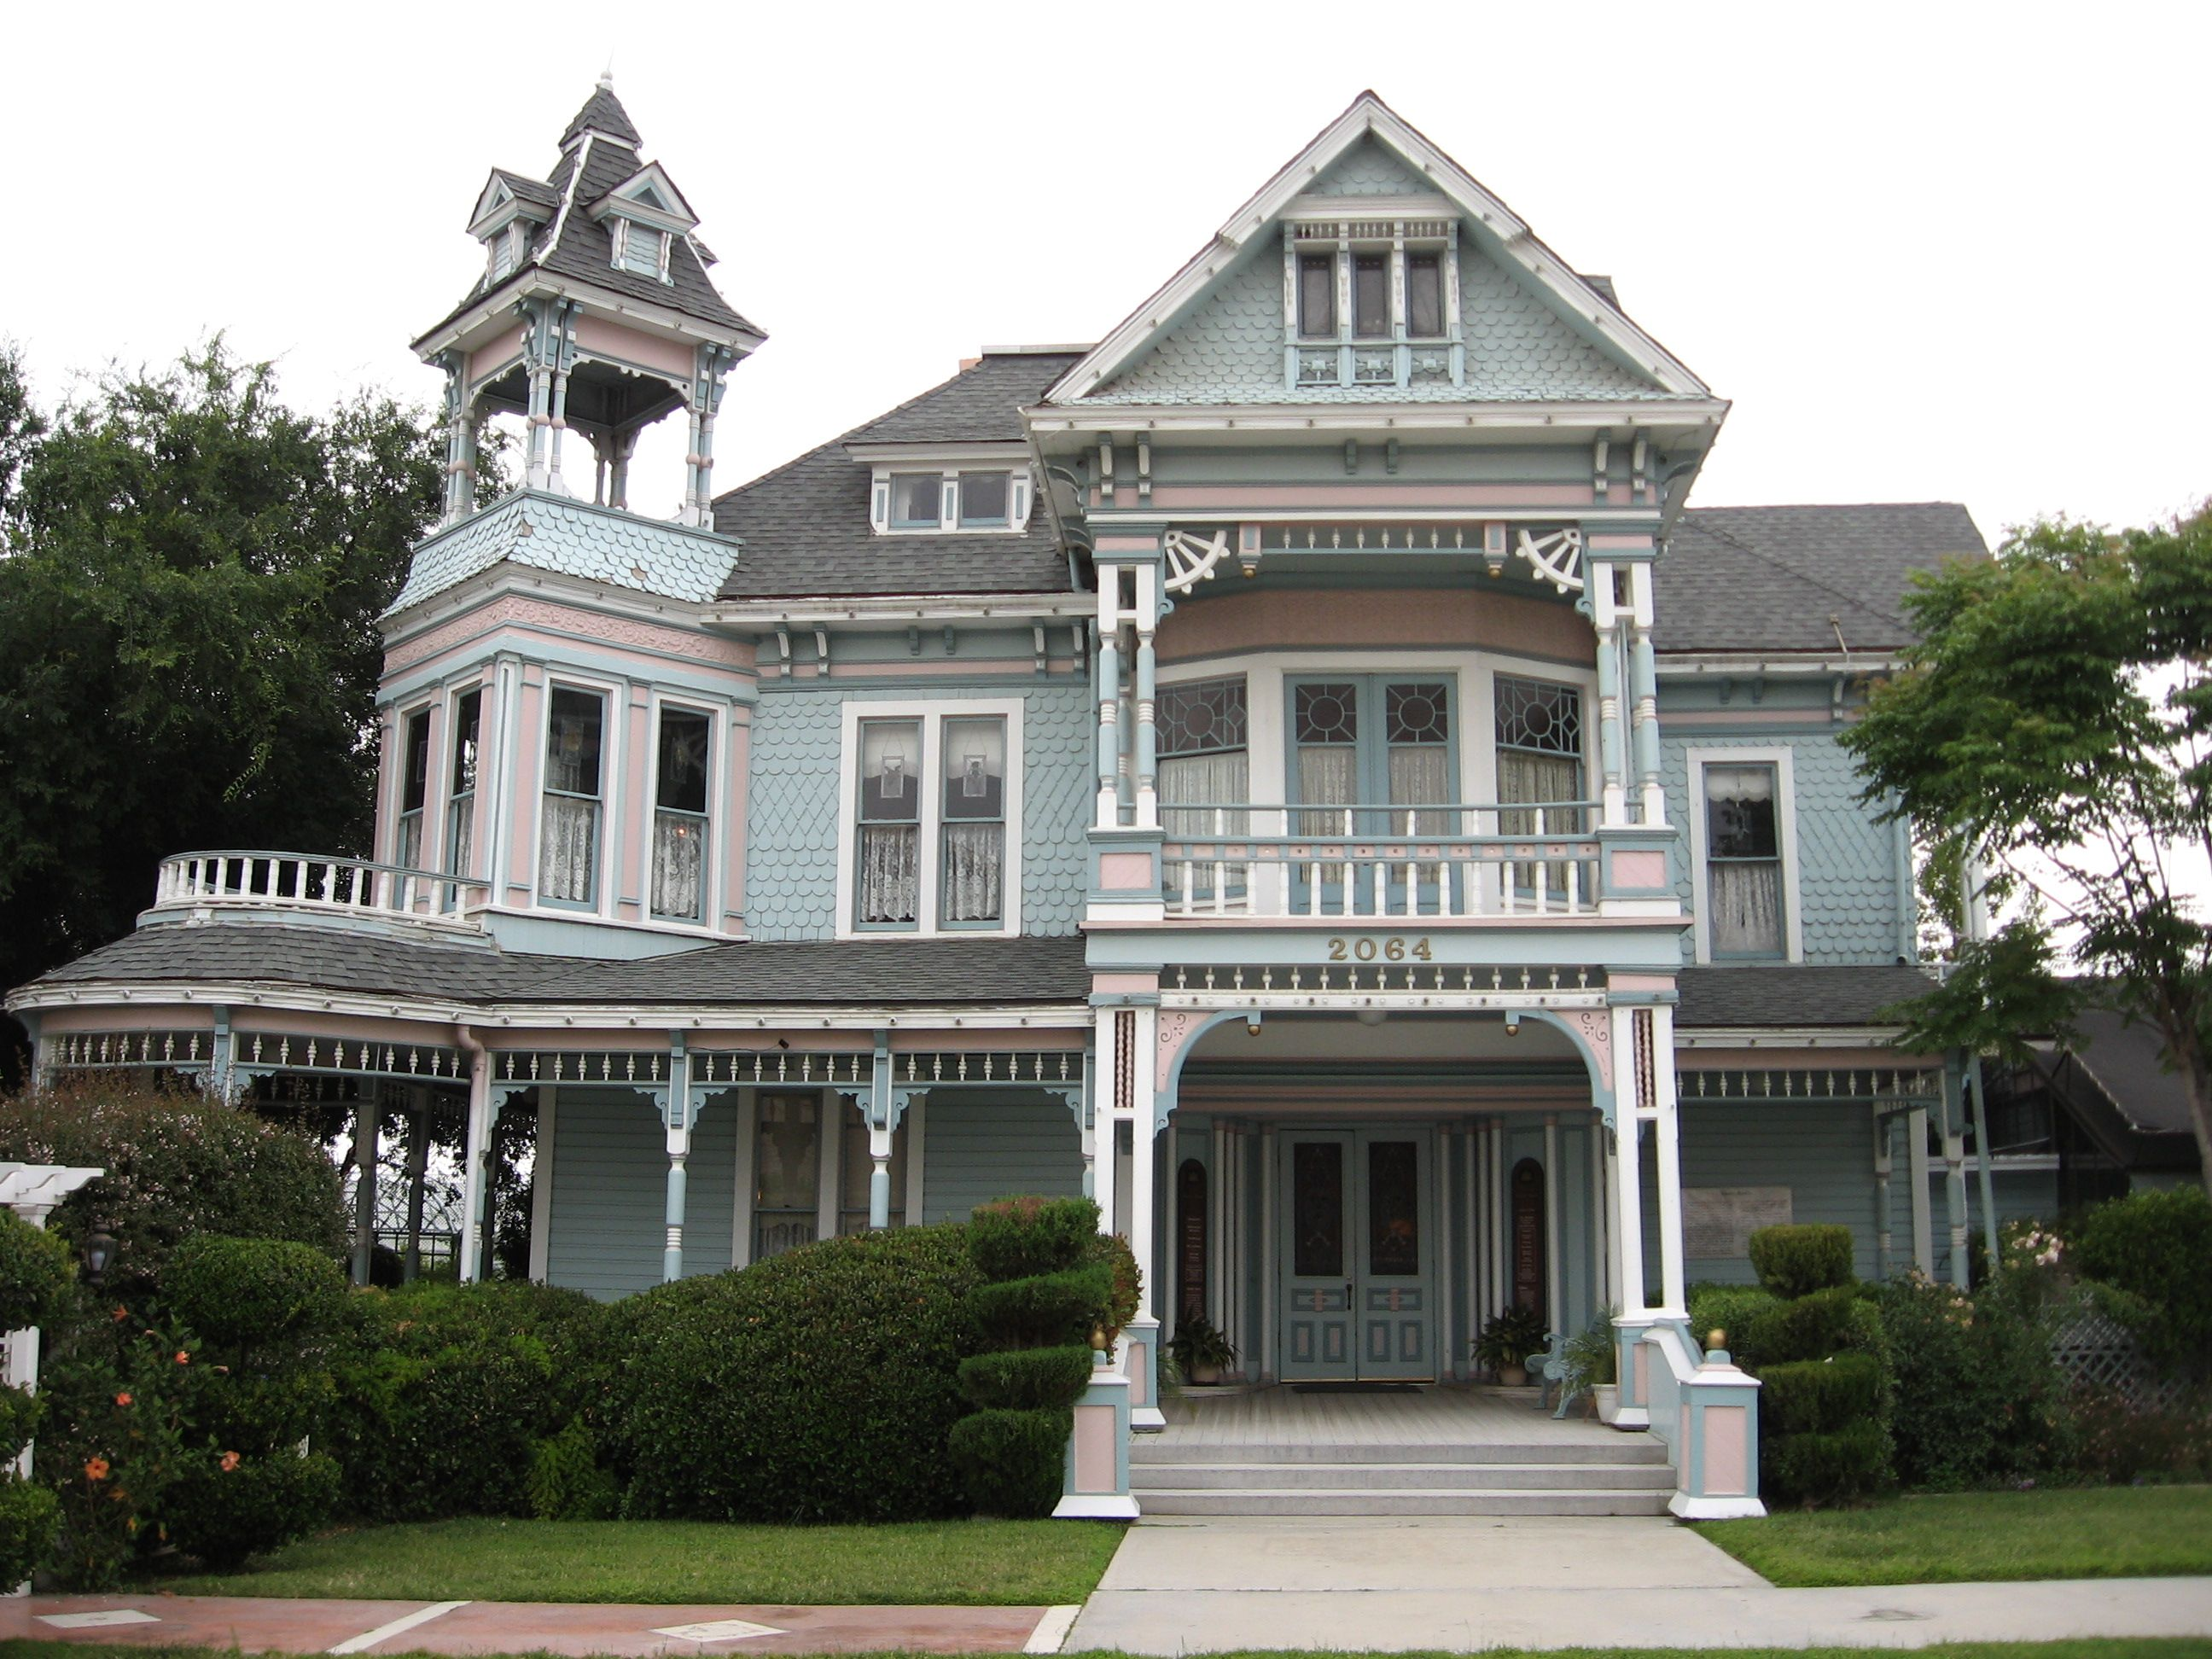 1890 edwards mansion in redlands, california | our family memories